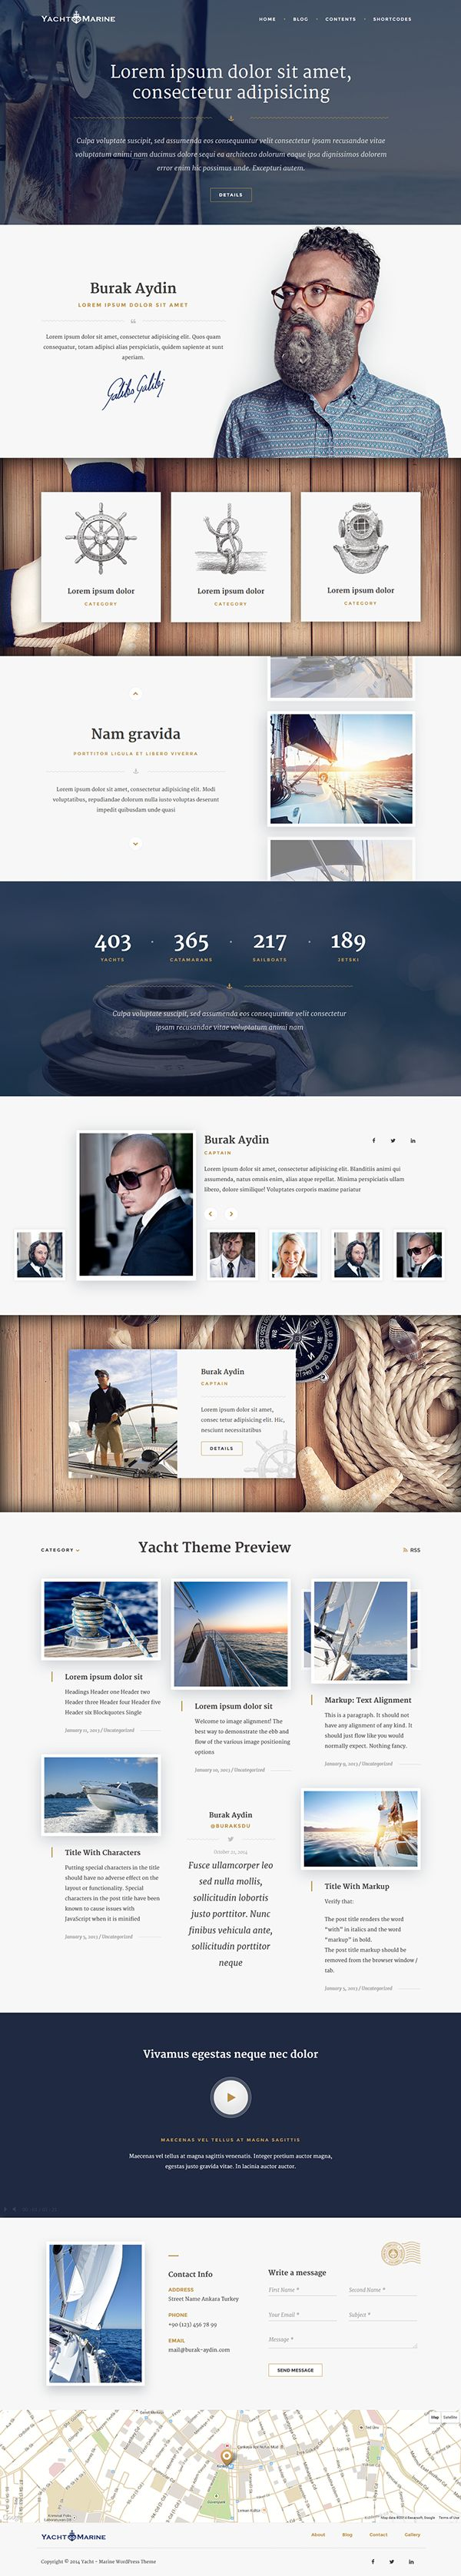 Yacht - Marine WordPress Theme UI/UX, Web Design, Web Development